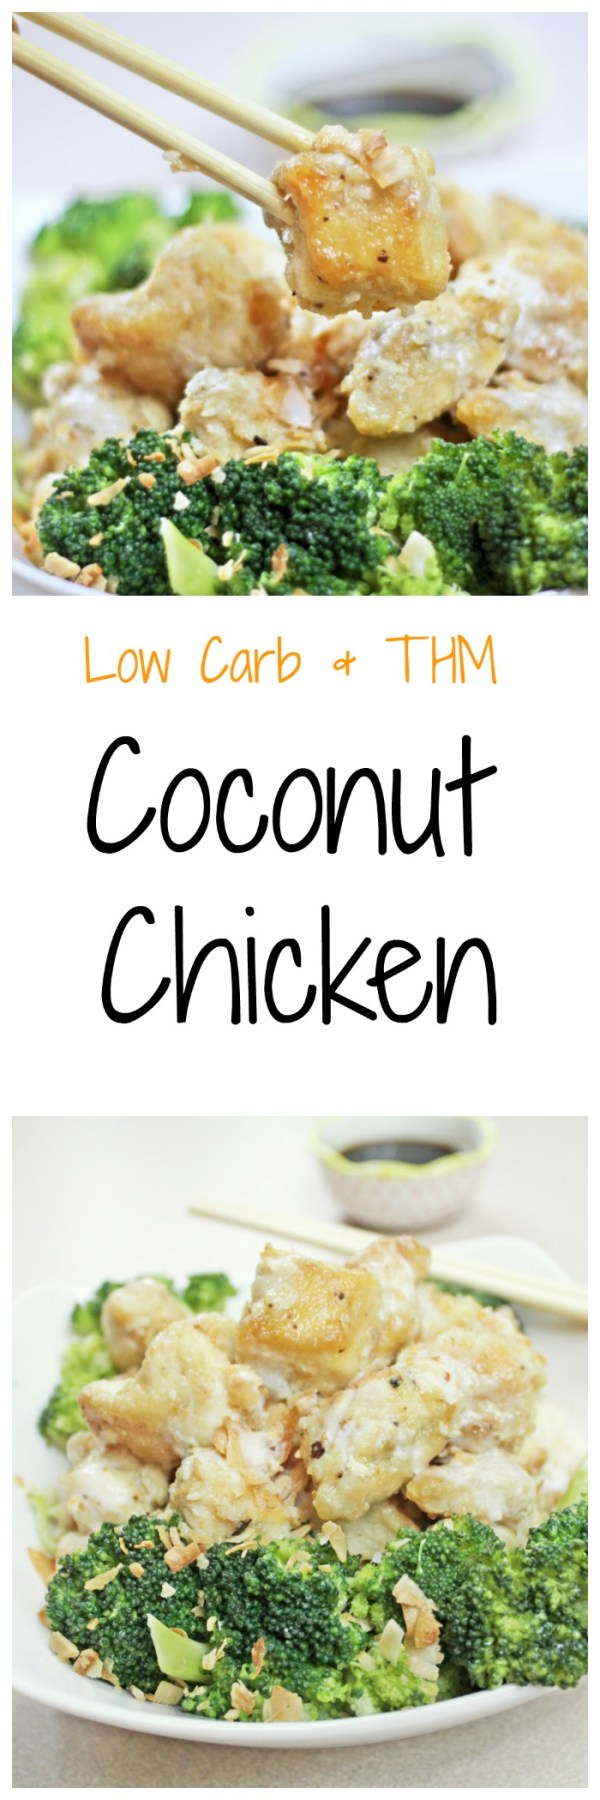 Coconut Chicken || Low Carb, THM, Asian Inspired, Gluten Free, Chicken